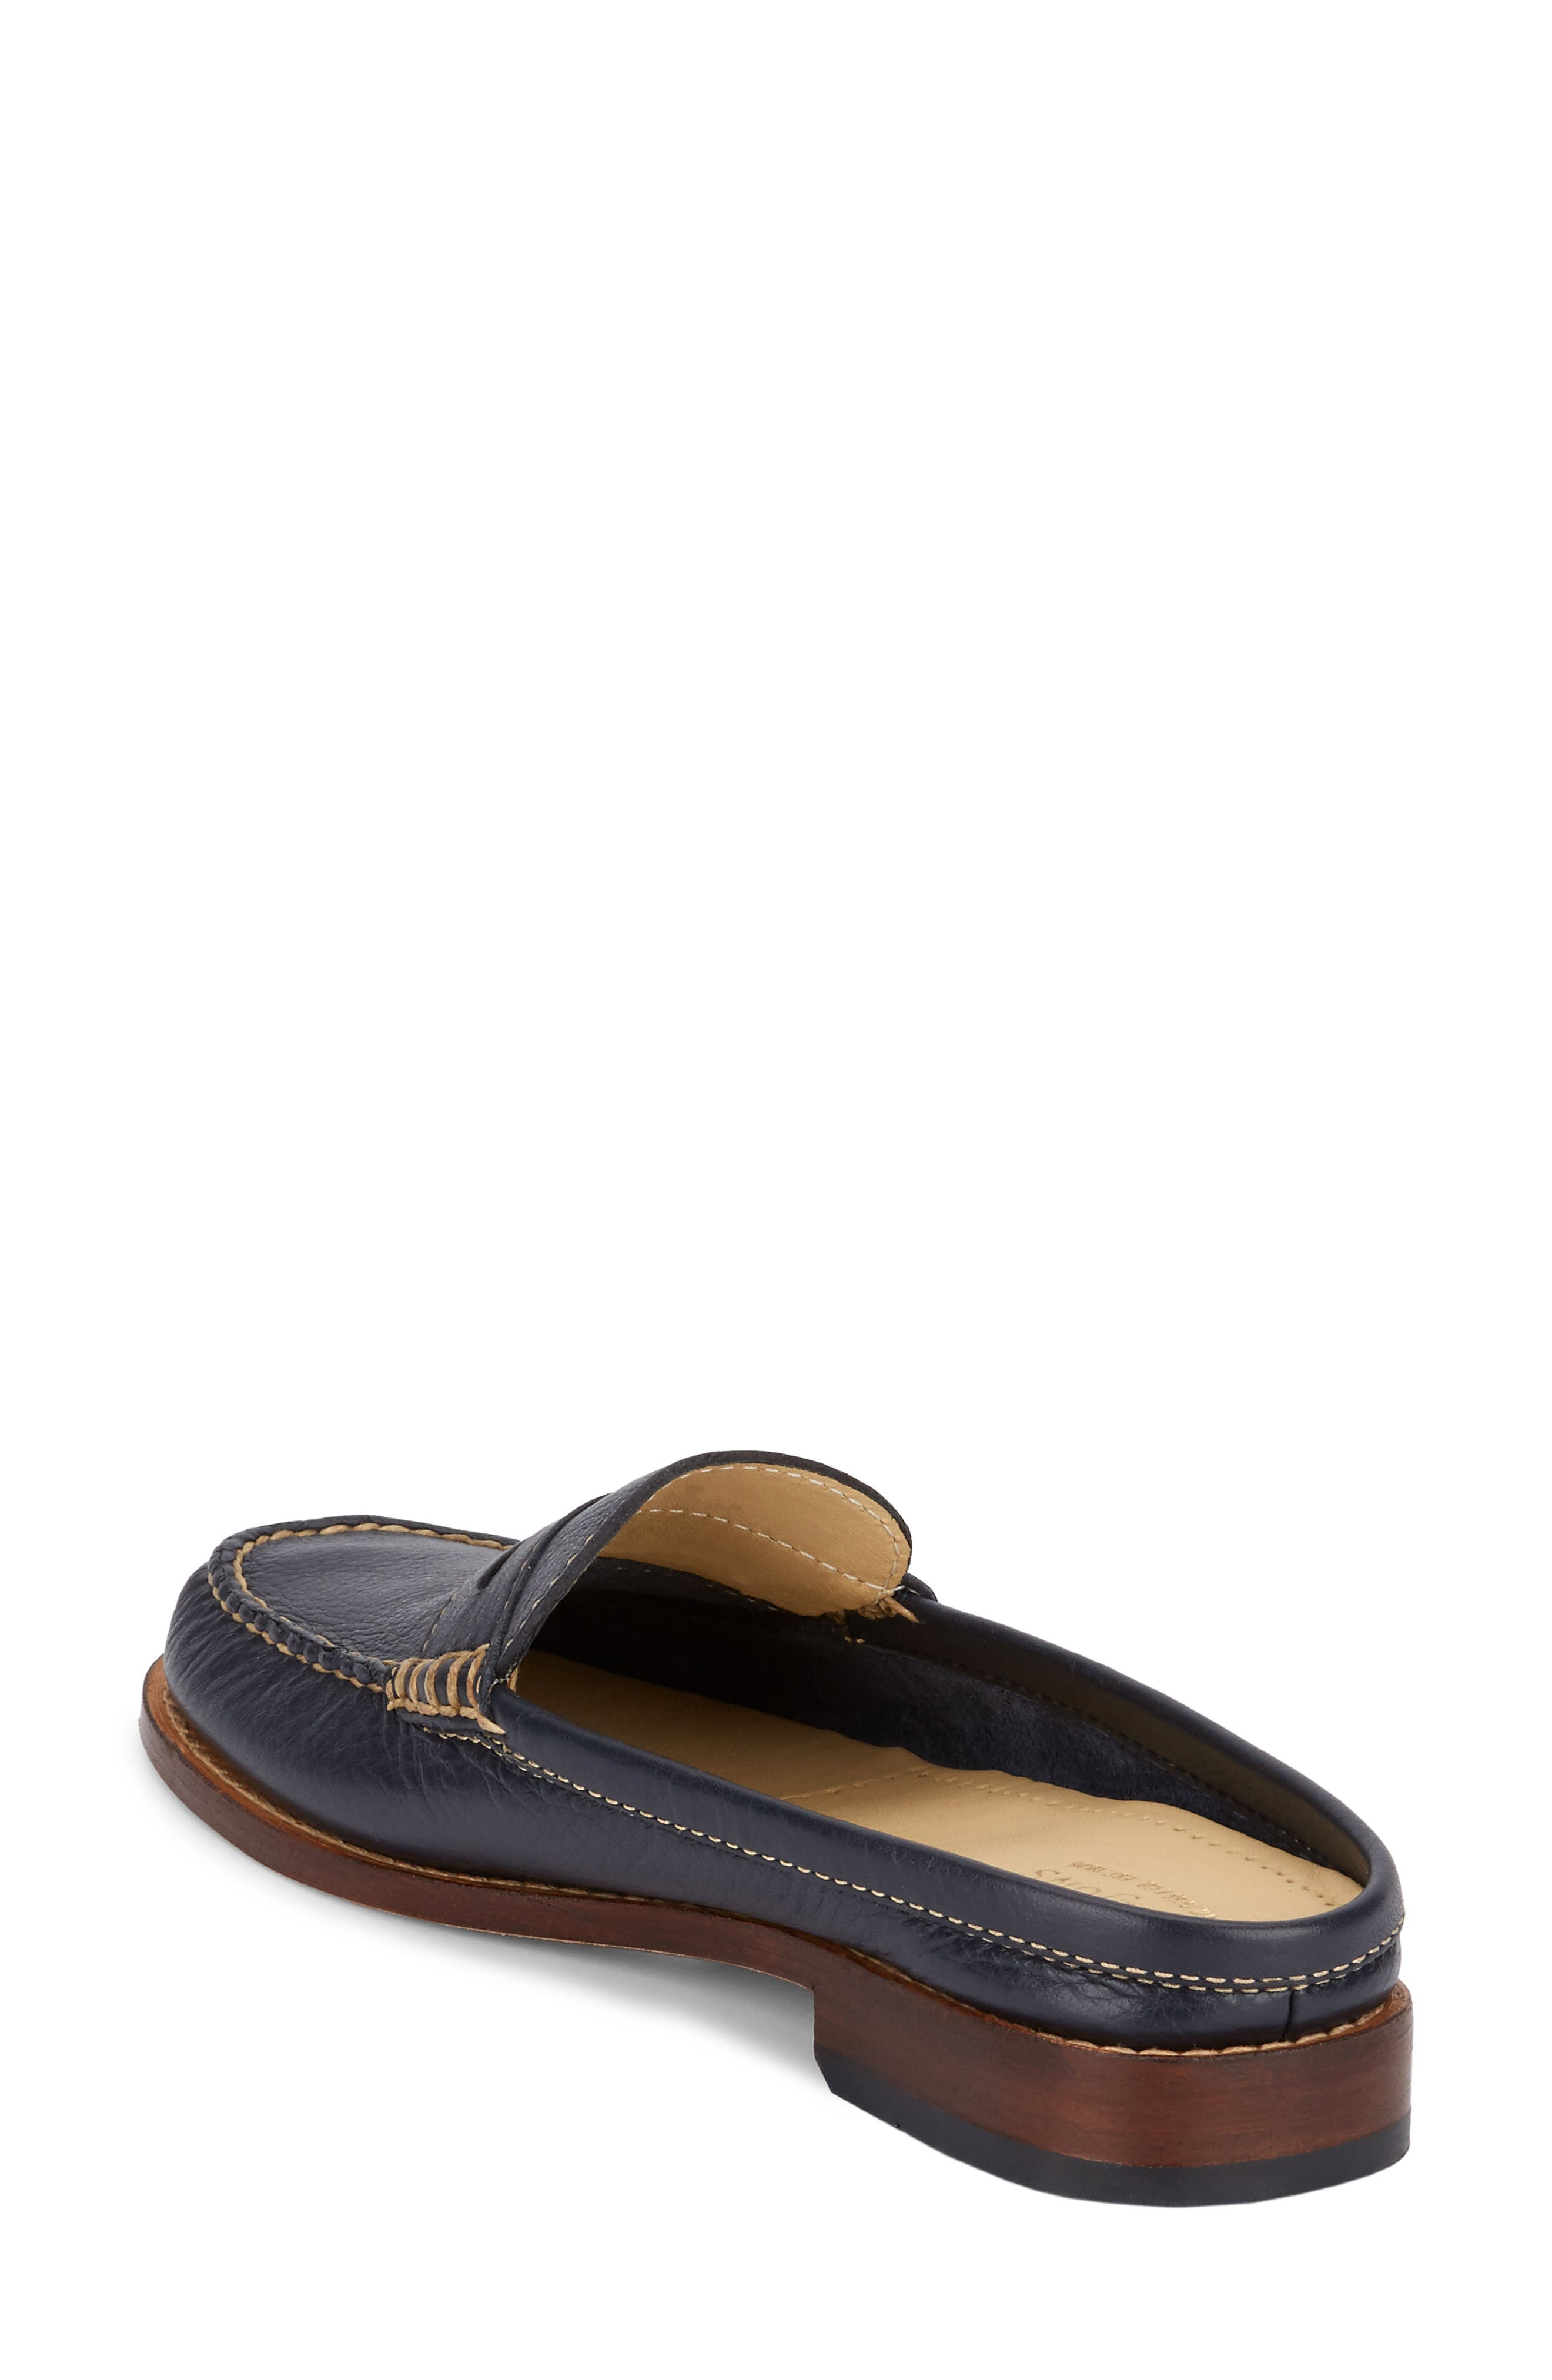 Wynn Loafer Mule,                             Alternate thumbnail 33, color,